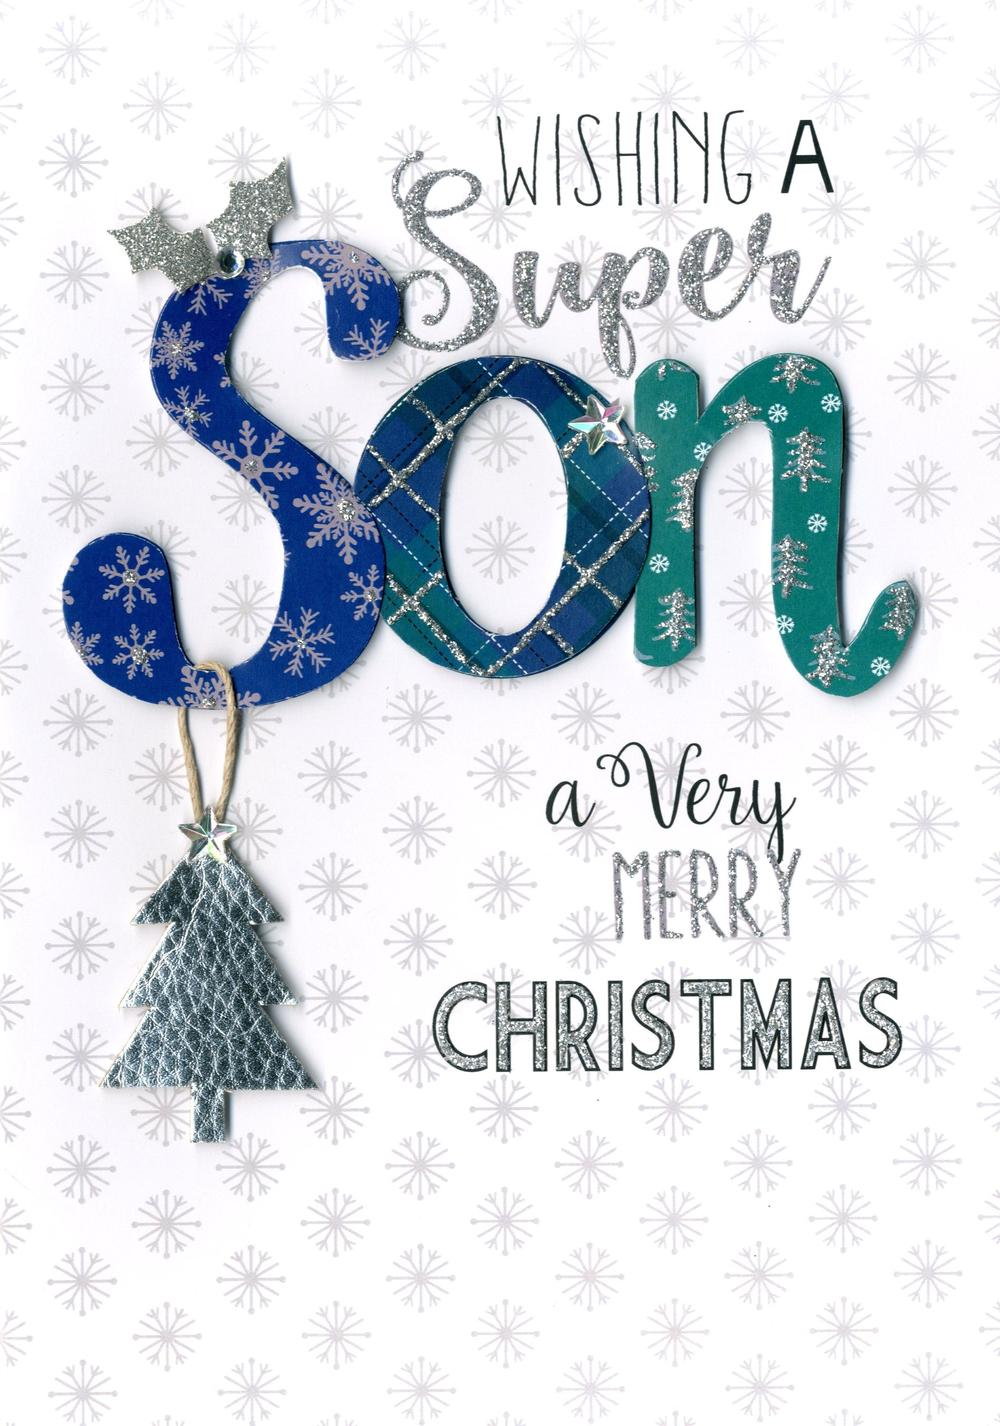 Super Son Embellished Christmas Card